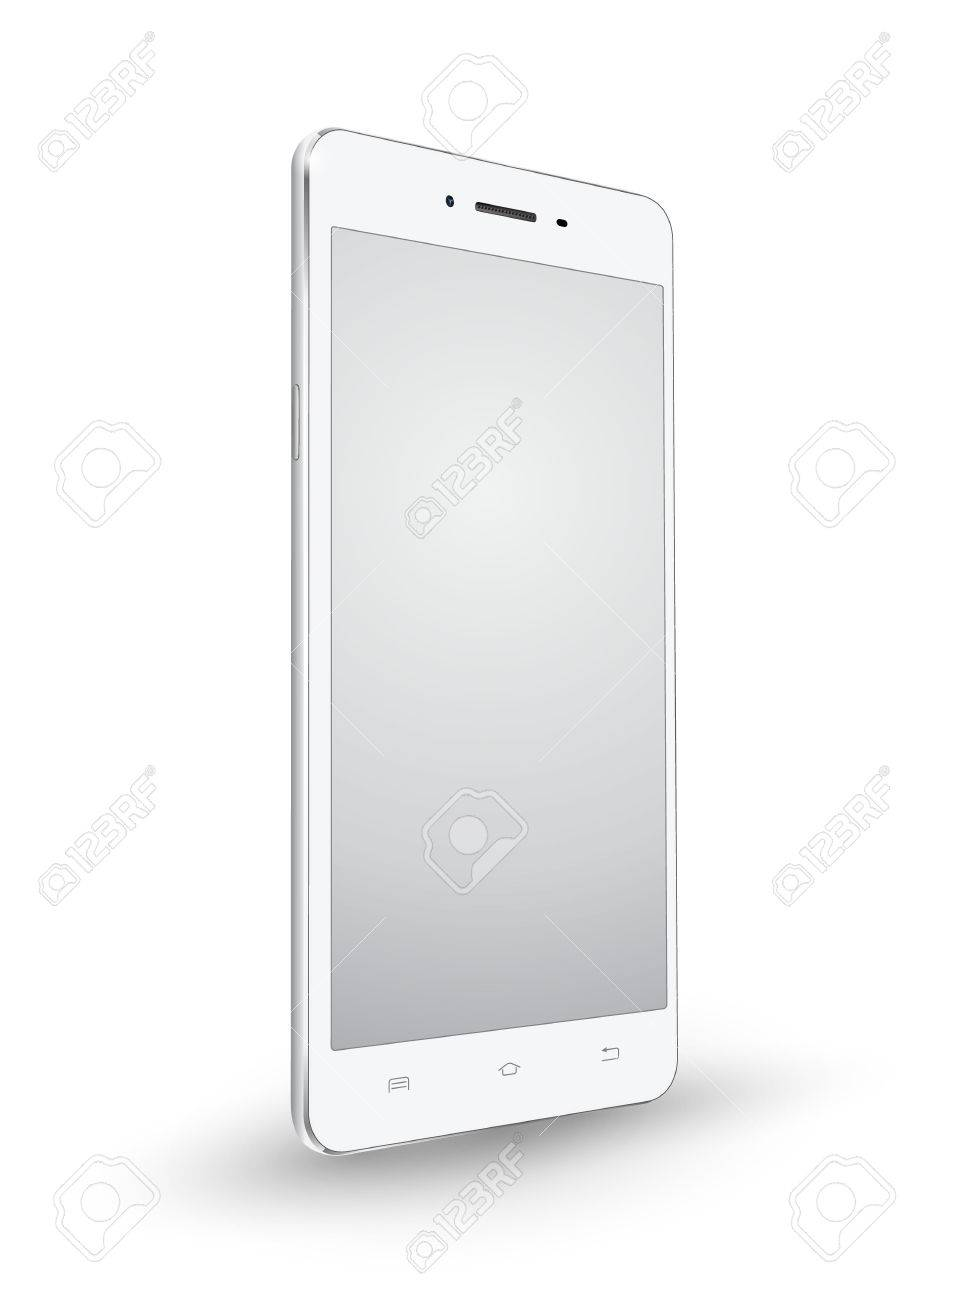 New realistic white smartphone mockups with blank screen isolated on white background. Vector illustration. for printing and web element, Game and application mockup. - 61413081